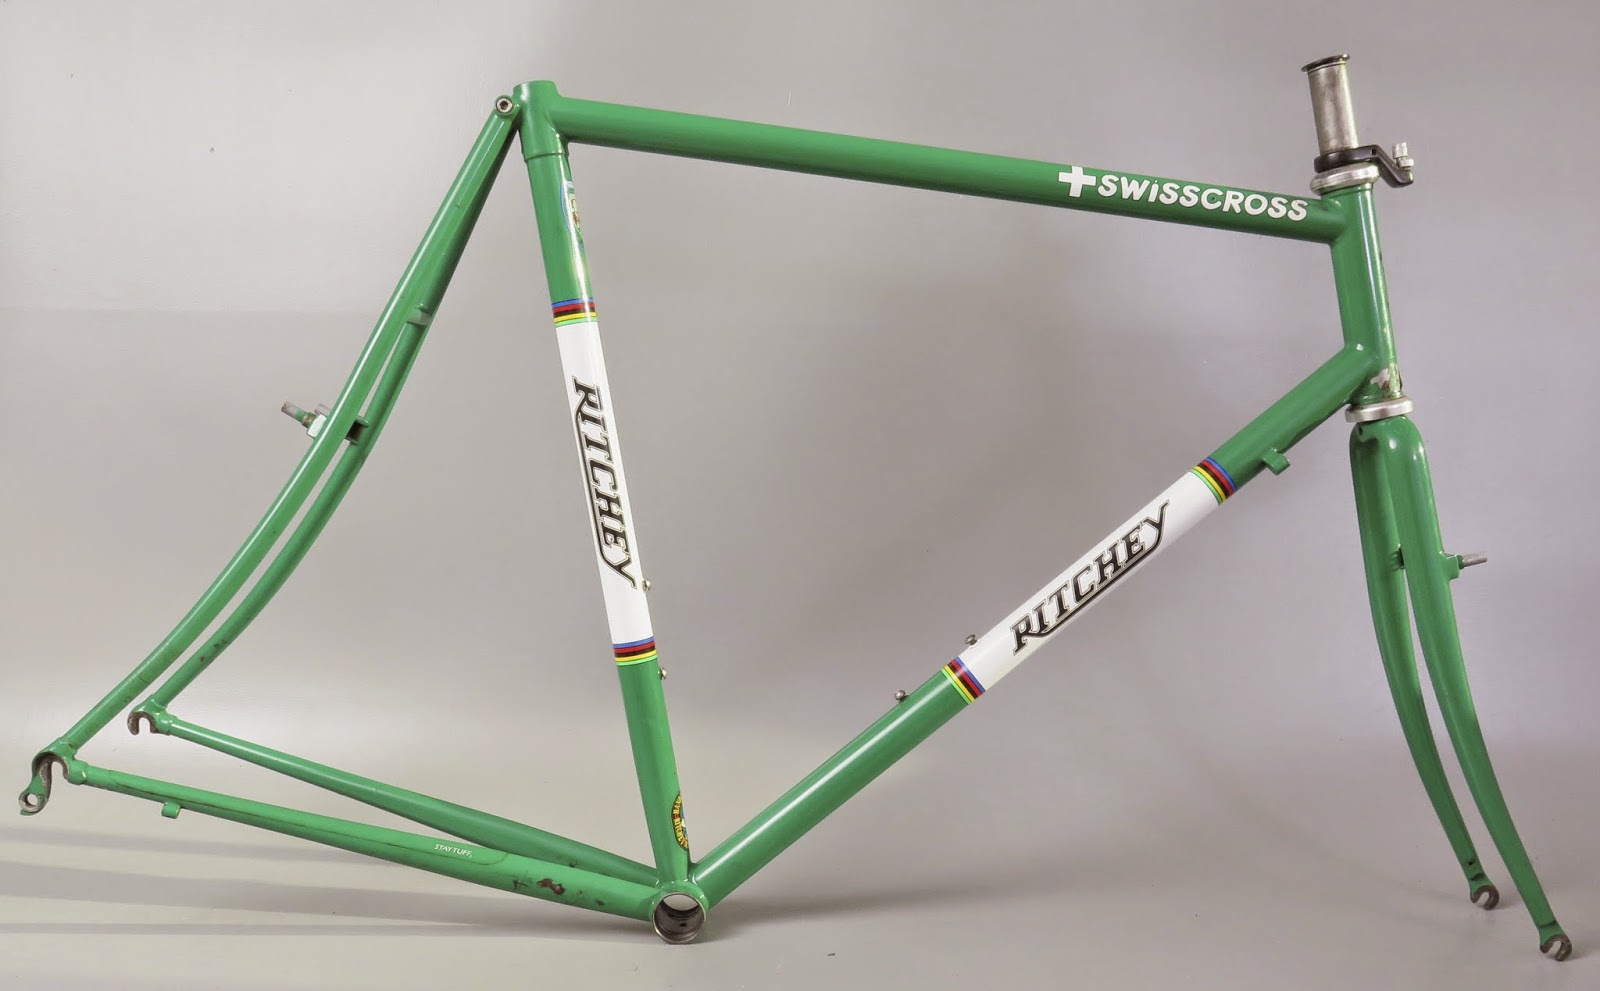 2000 ritchey swisscross 58cm steel cyclocross frame fork english bb green